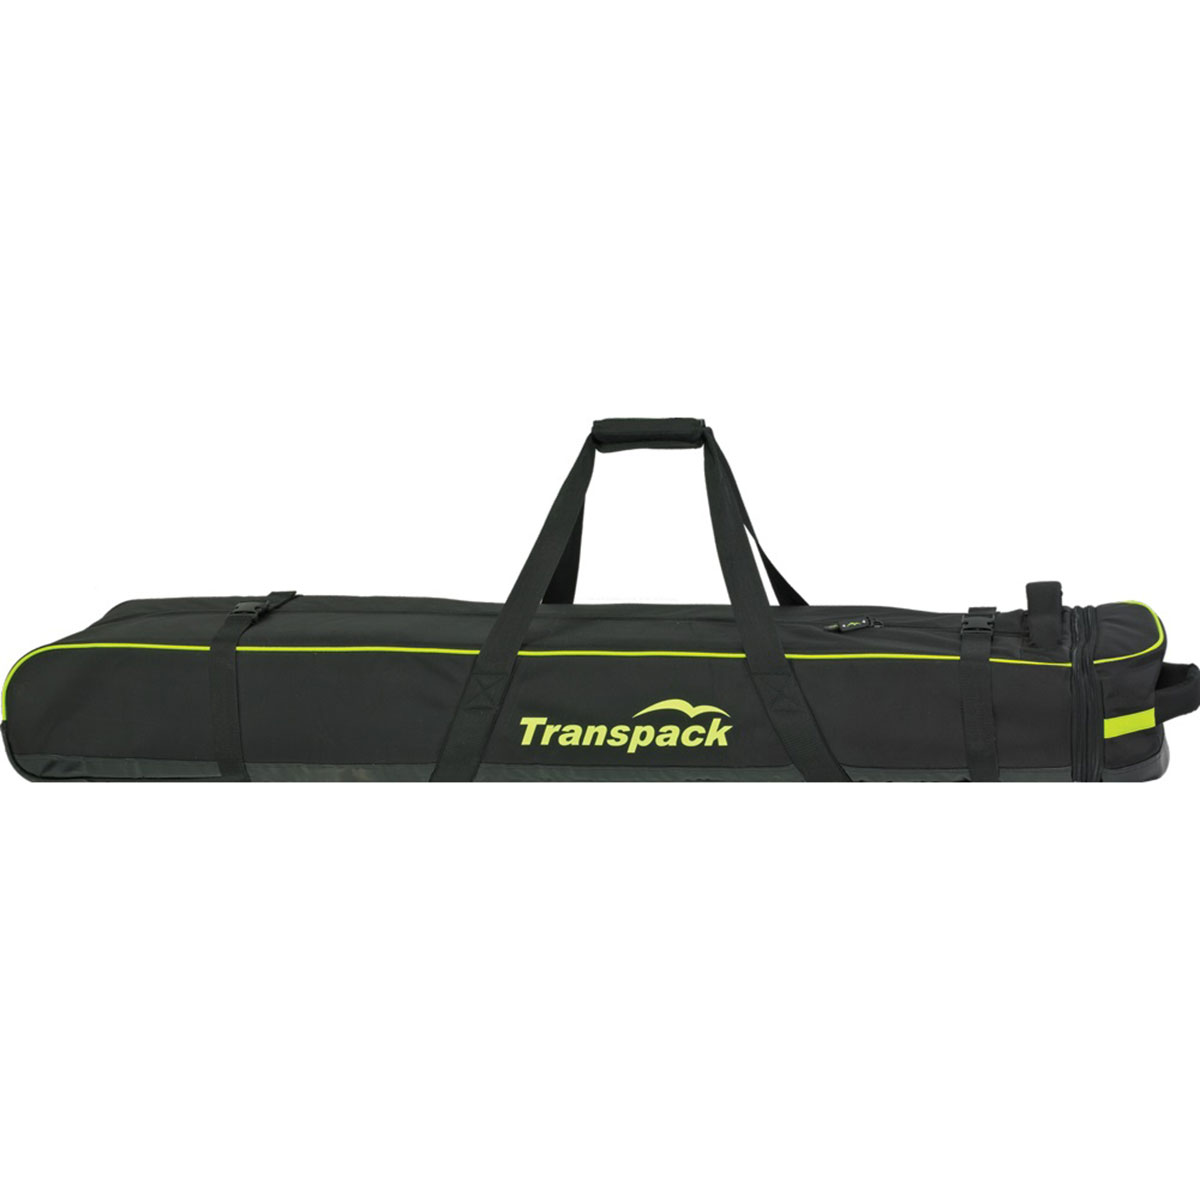 Transpack Ski Vault Double Pro Ski Bag in Black and Yellow Electric